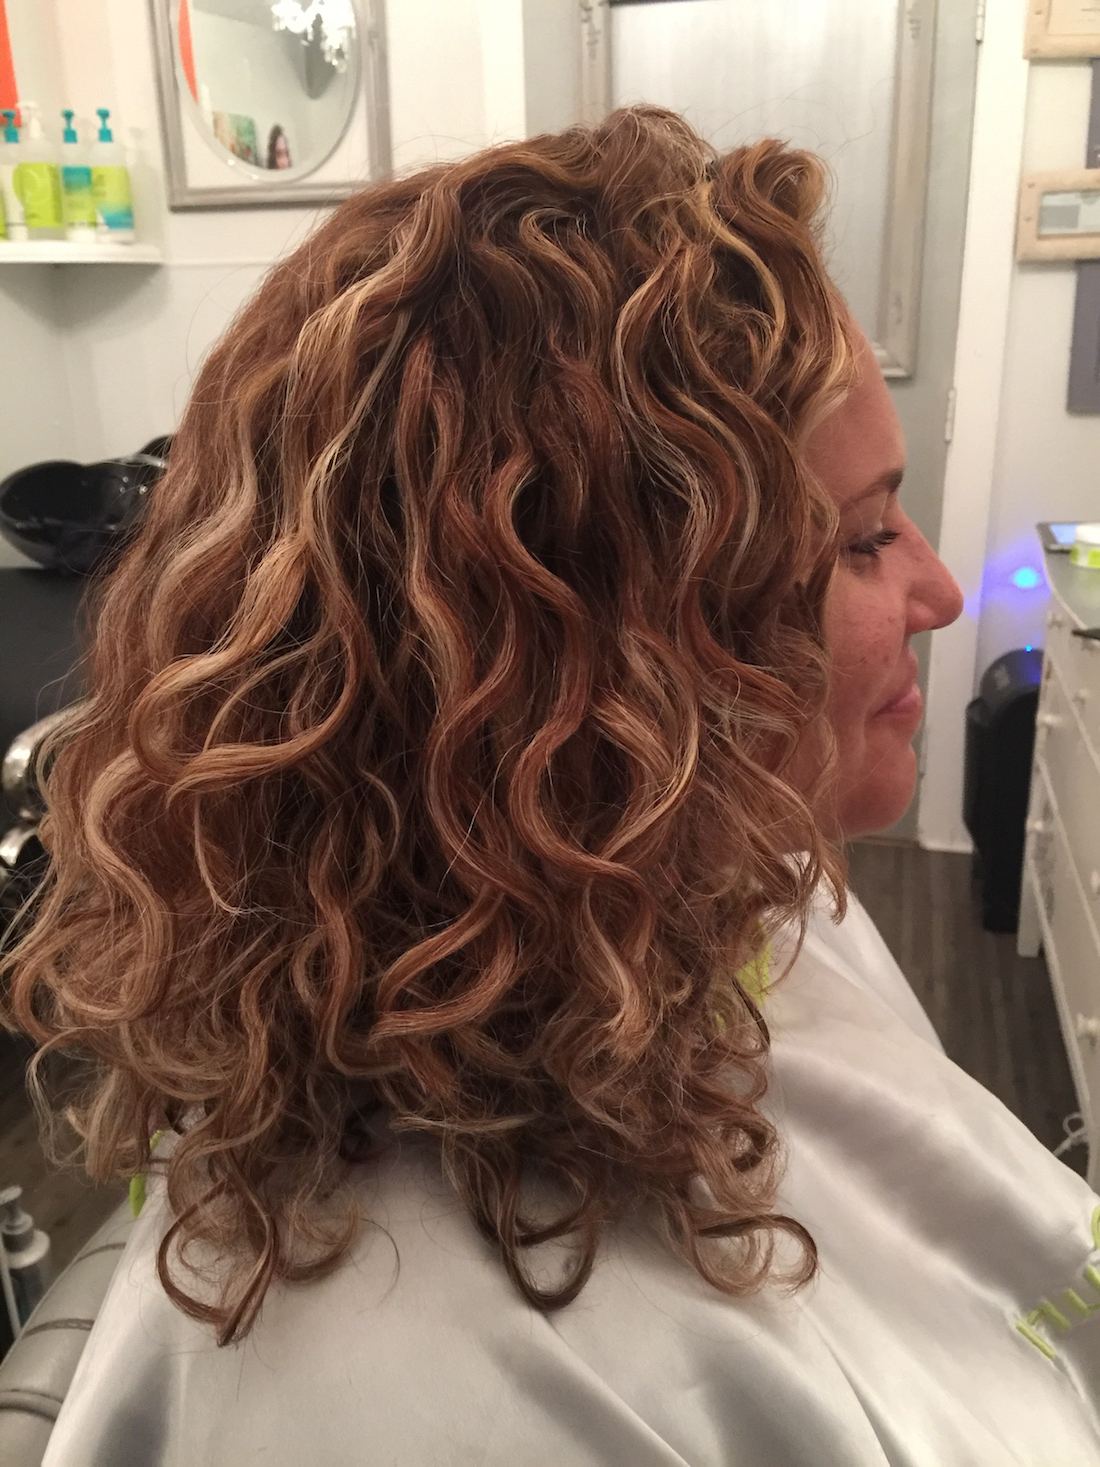 Pintura Highlights The Color Method For Curly Hair In Most Up To Date Natural Curls Hairstyles With Caramel Highlights (View 13 of 20)